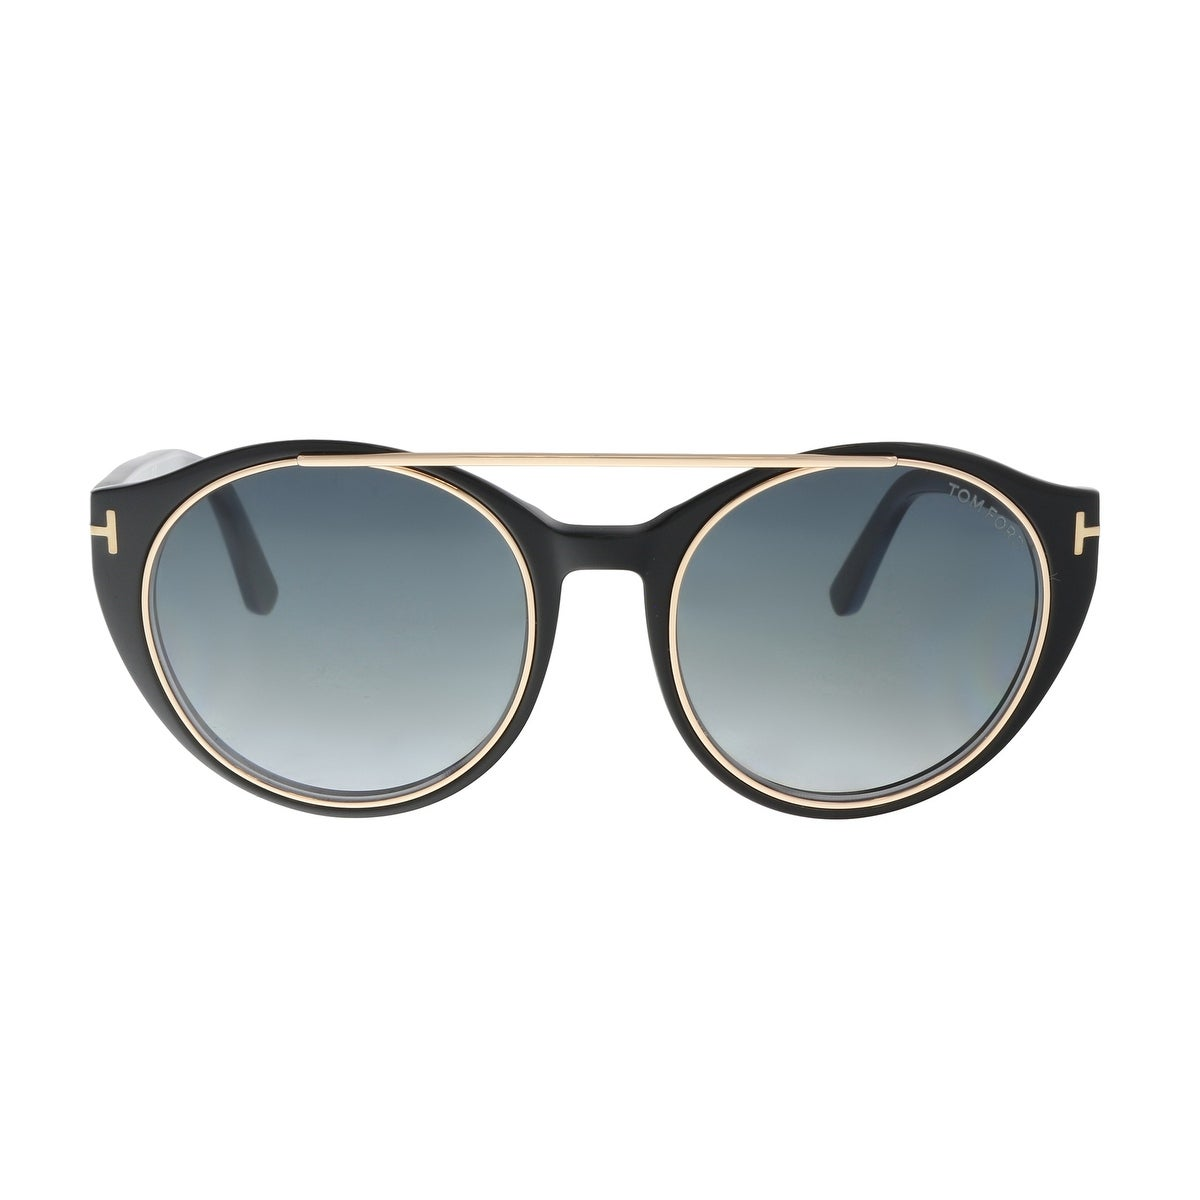 f0fb7556bcec Shop Tom Ford FT0383/S 01W Joan Black Aviator Sunglasses - 52-19-140 - Free  Shipping Today - Overstock - 19518838